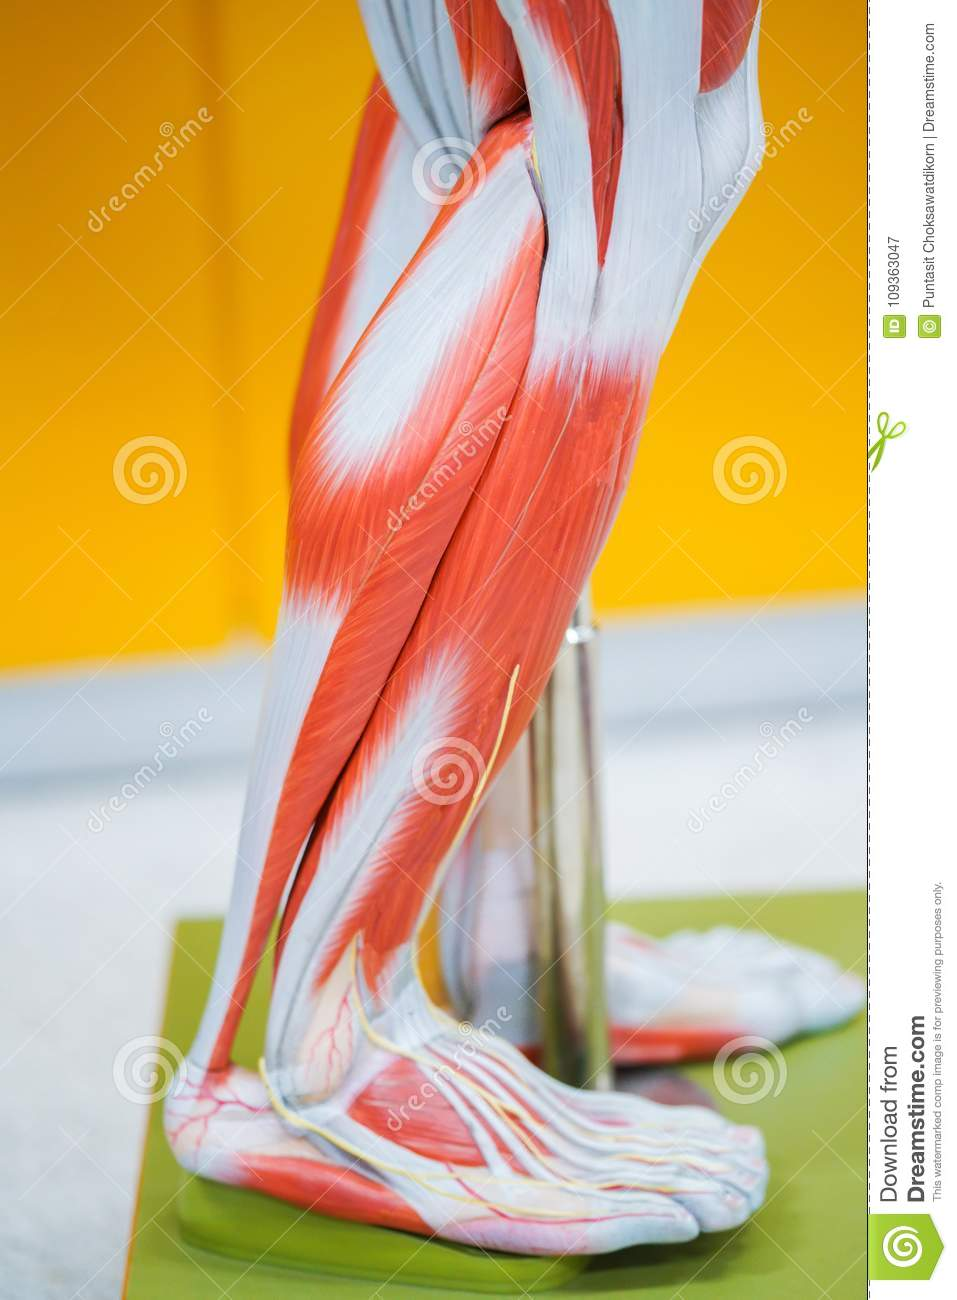 Human calf muscle anatomy stock image. Image of medicine - 109363047